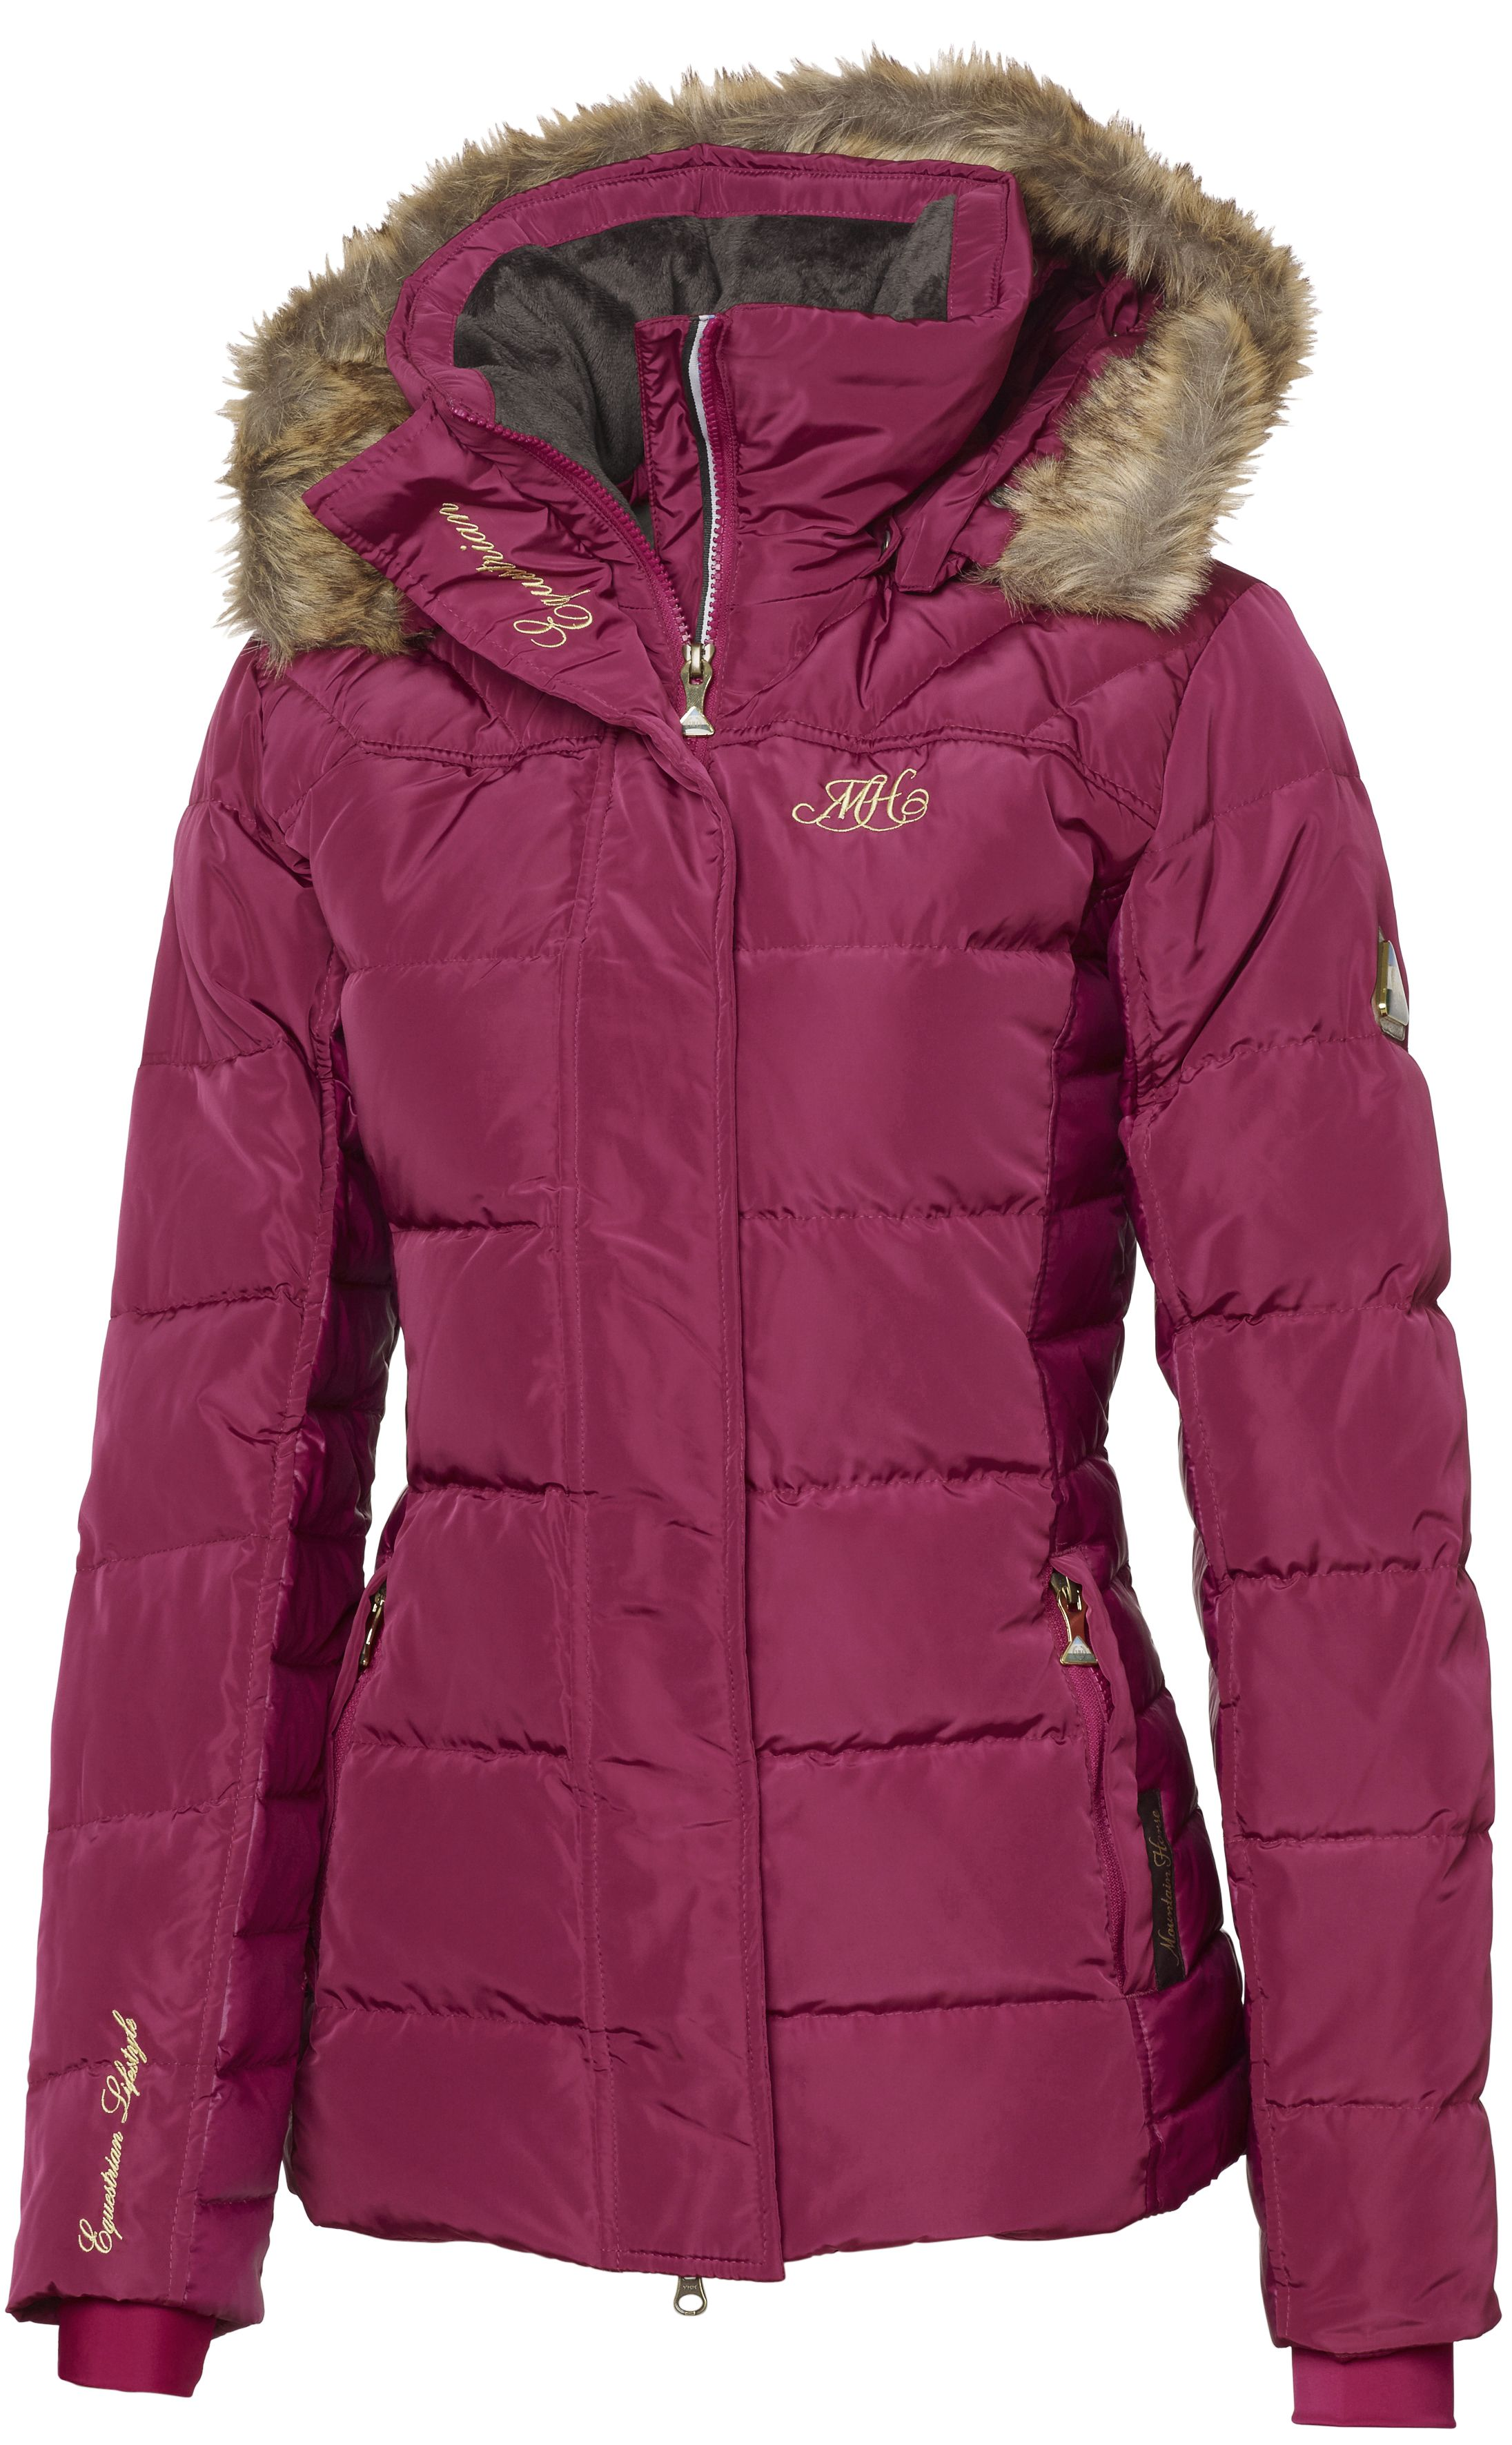 Mountain Horse Belvedere Down Jacket In Sunrise Pink Msrp 285 Horse Riding Helmets Riding Outfit Dressage Clothes [ 3543 x 2191 Pixel ]